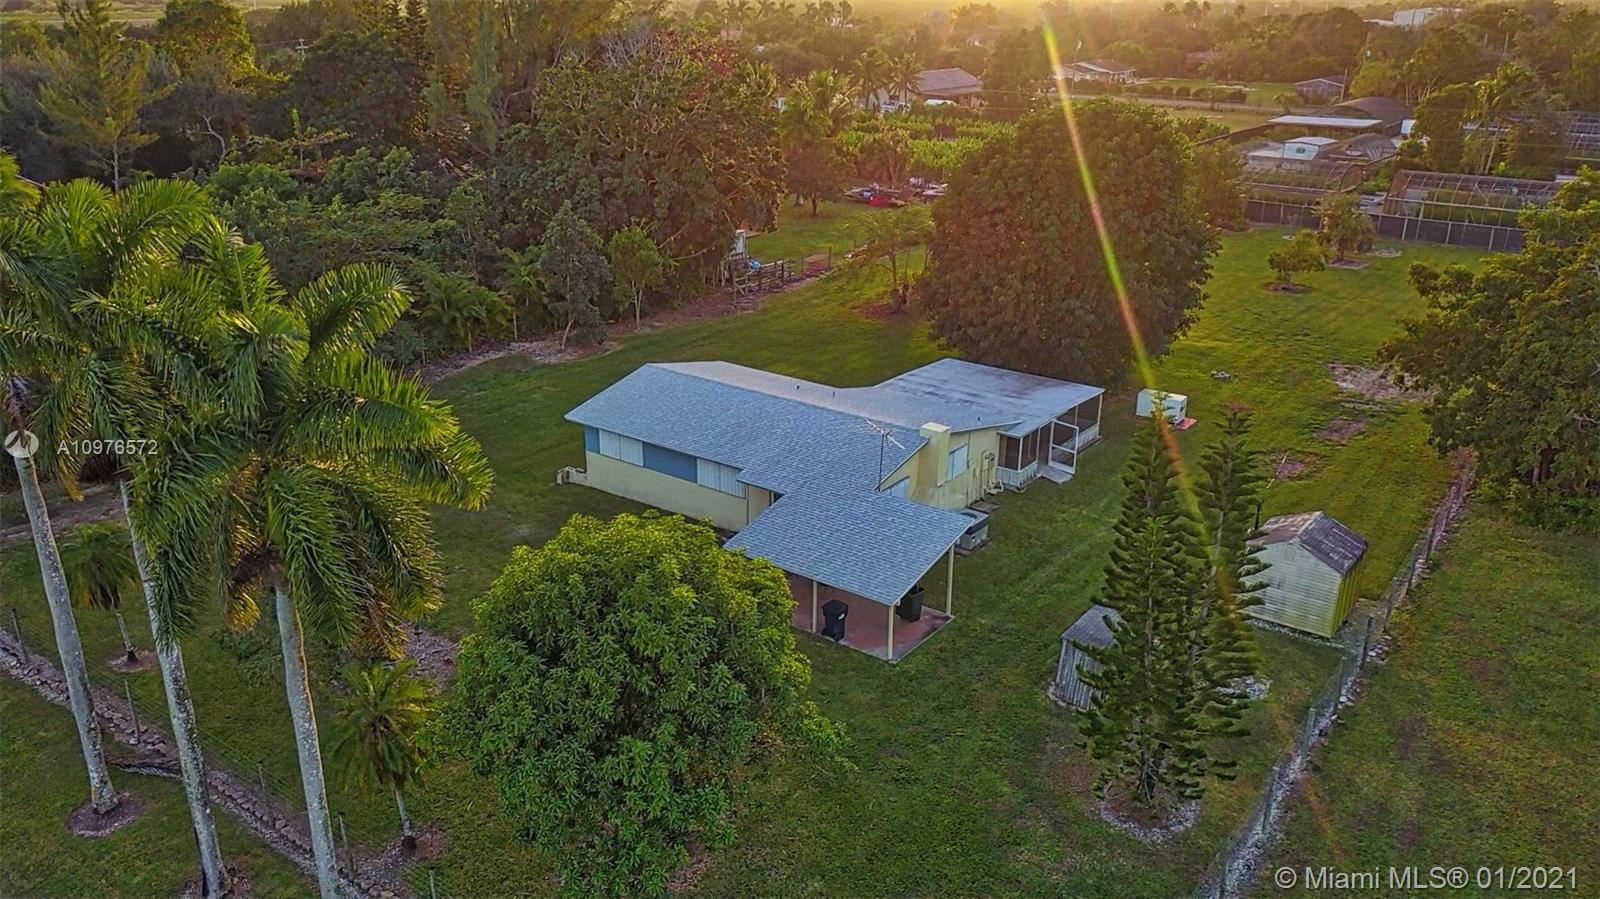 31850 SW 194th Ave, Homestead, FL 33030 - #: A10976572